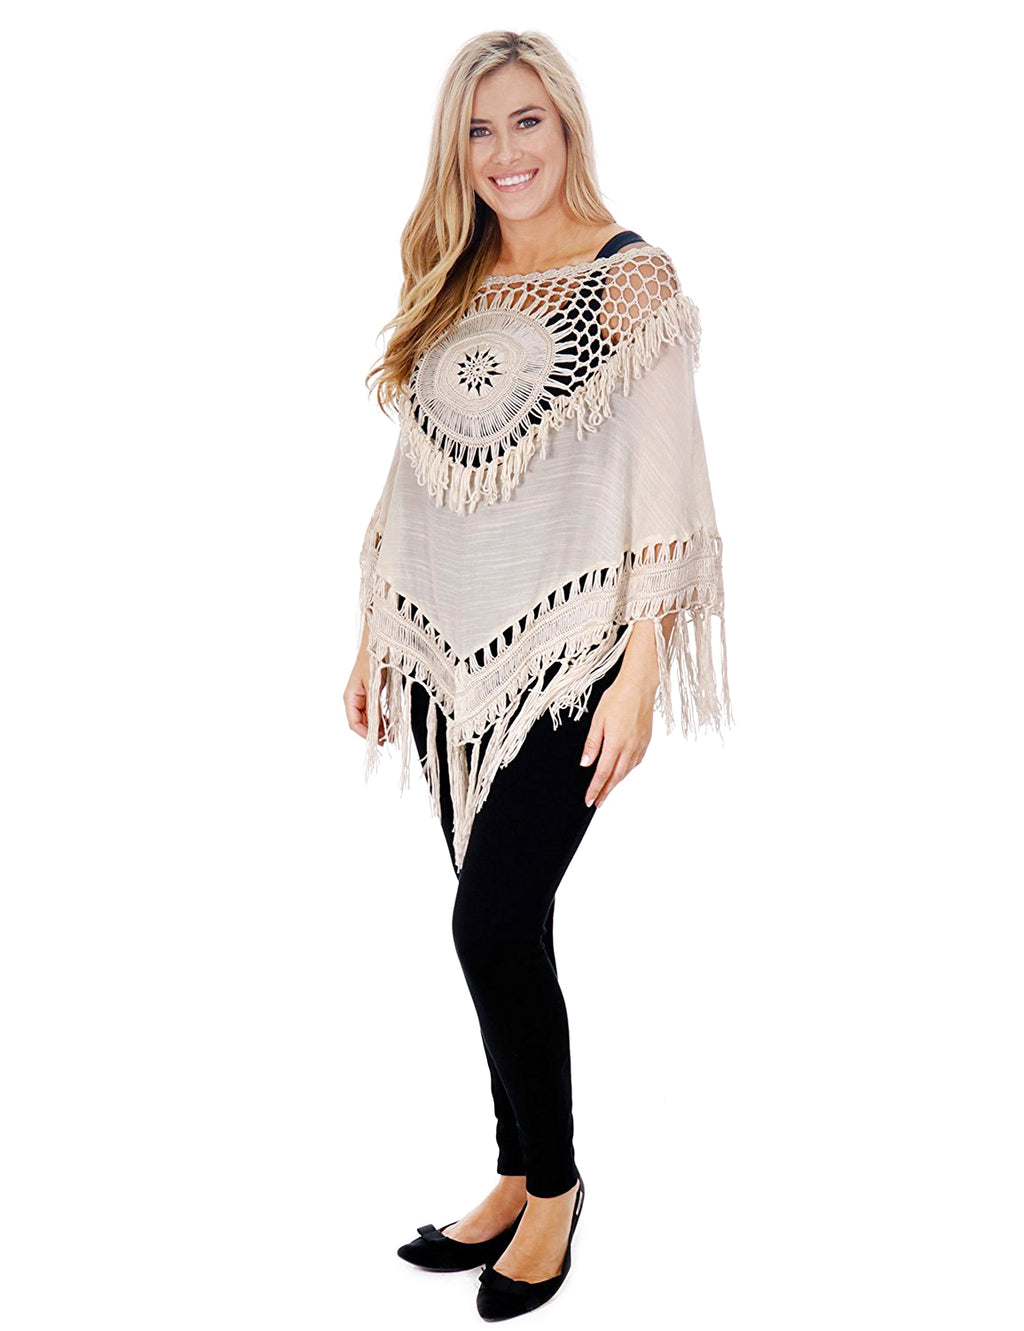 Boho Crochet Dreamcatcher Pullover Tunic Cover Up with Tassels